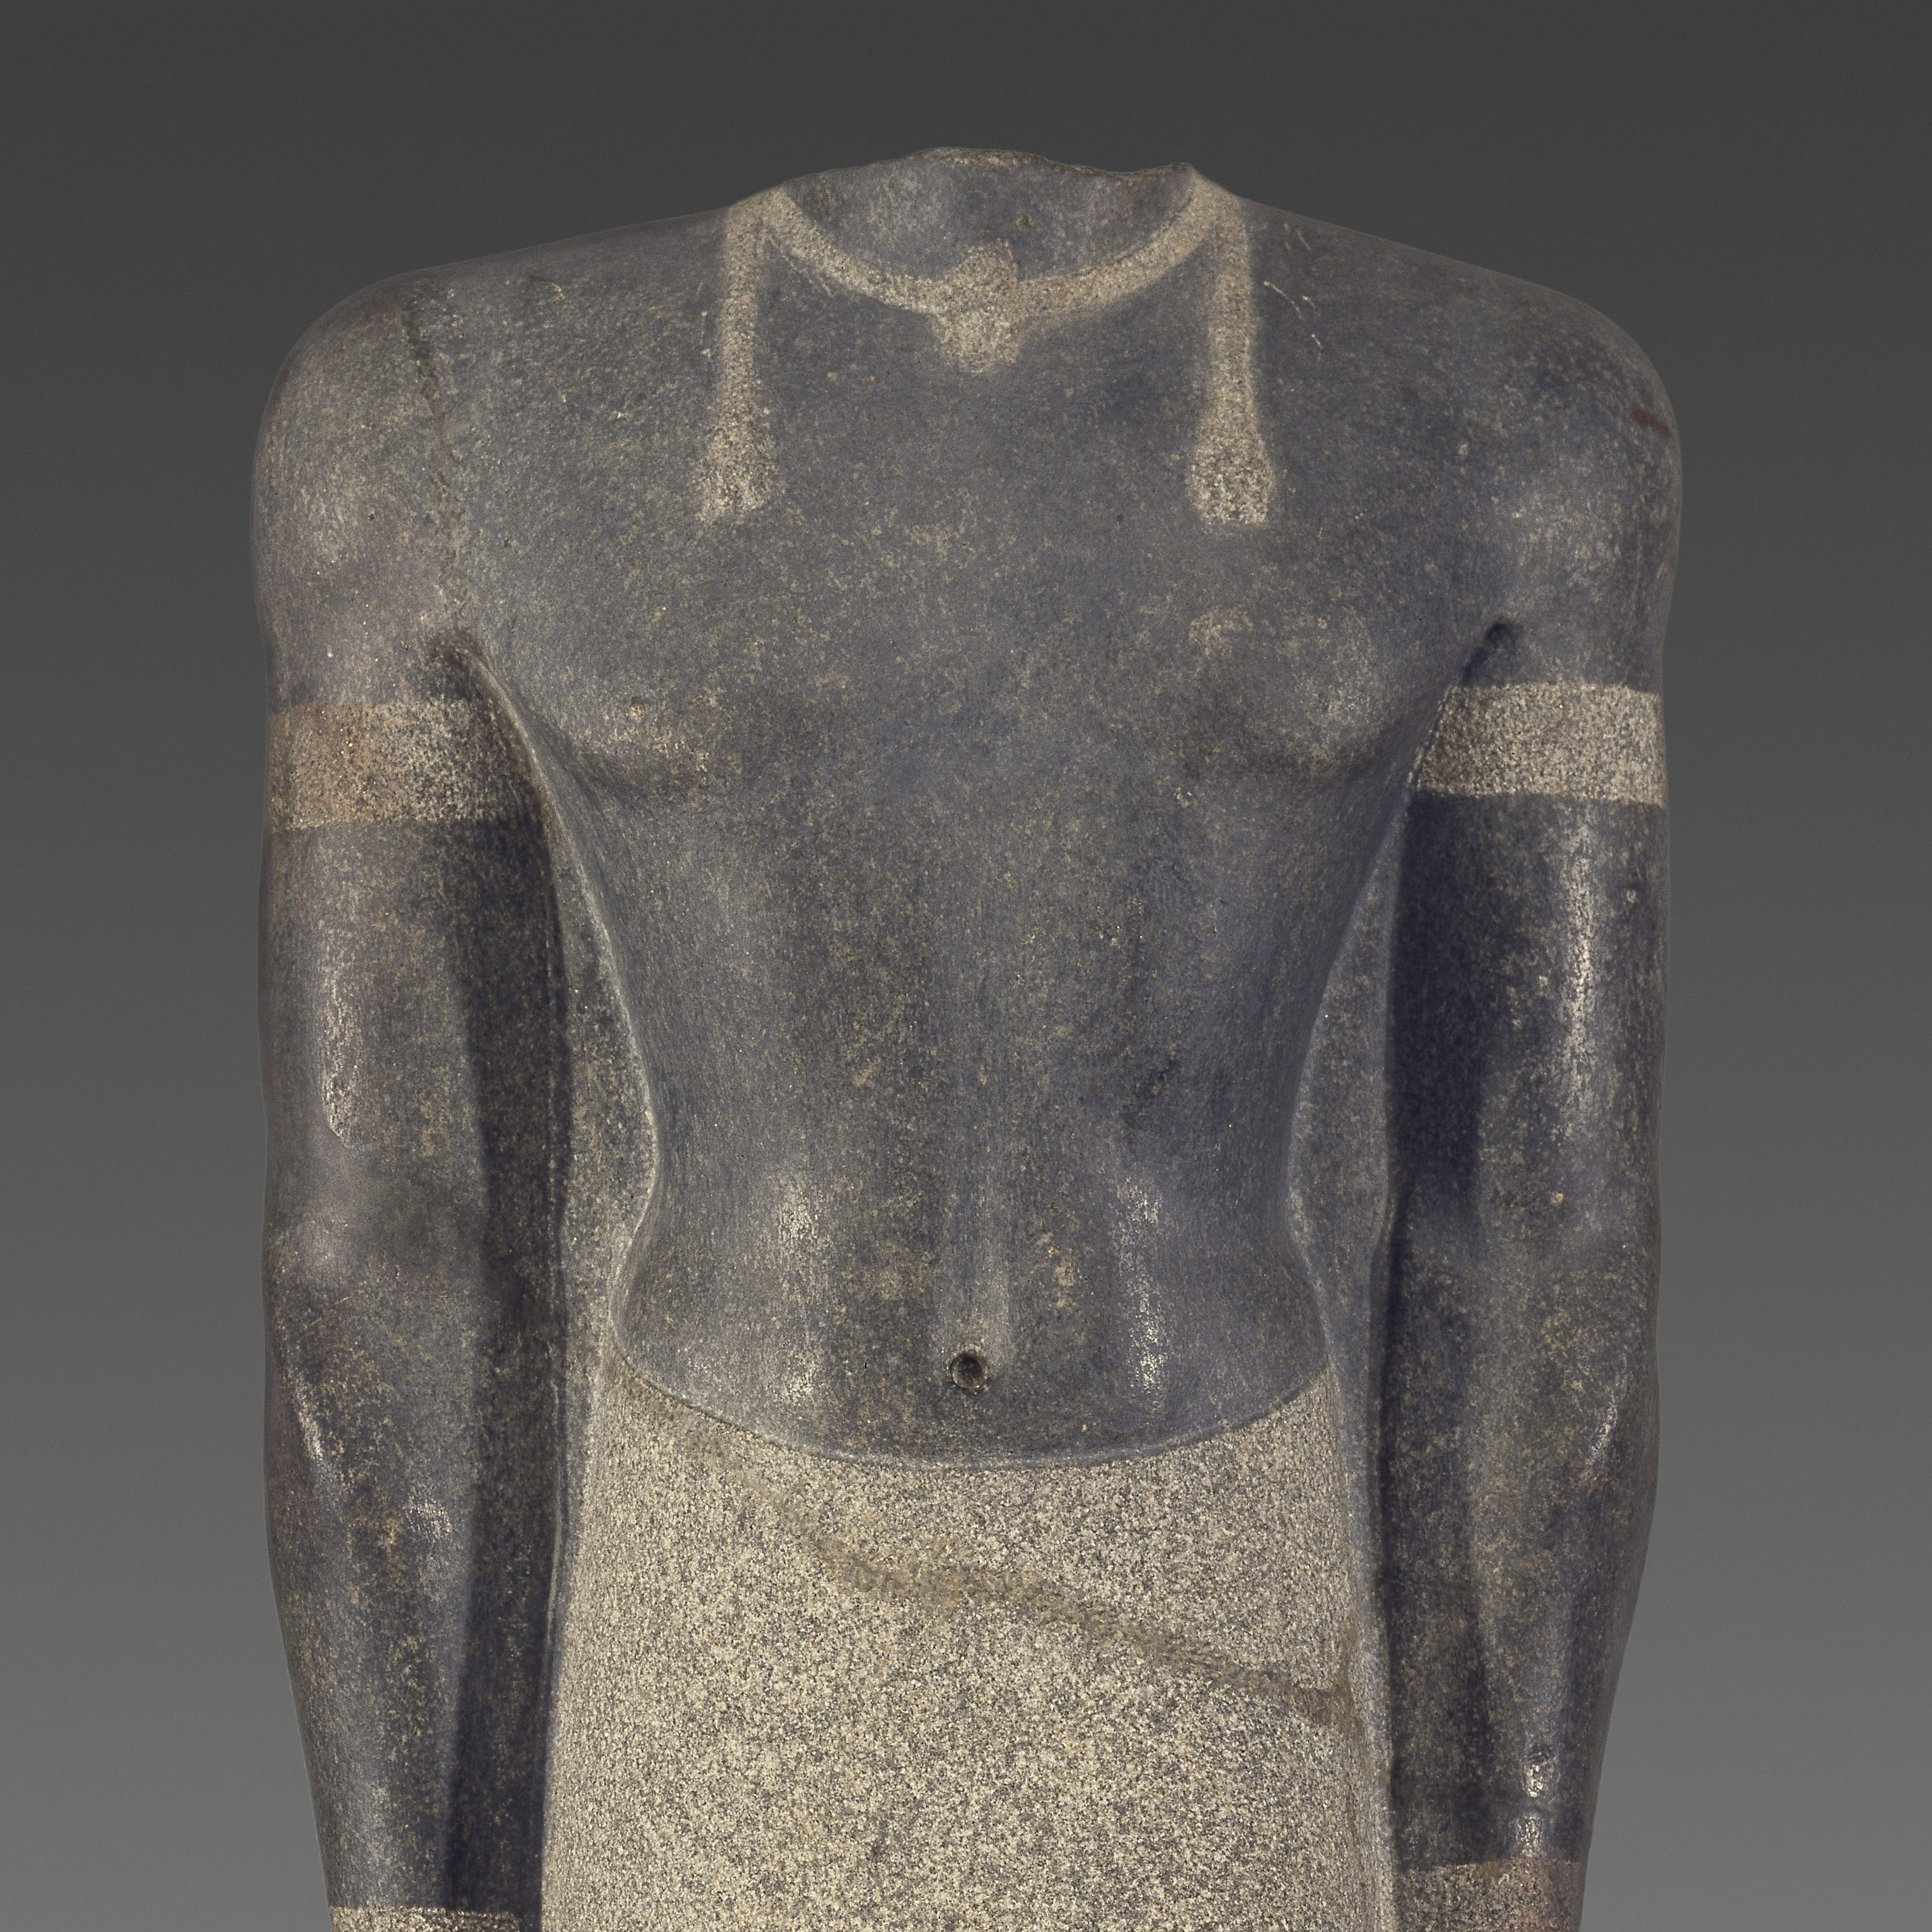 <p>Begin in the Ancient Egyptian Gallery on Level 2. Have fun!</p> <p>A man in a skirt never looked so good. Find this figure and name the article of clothing he's wearing.</p>